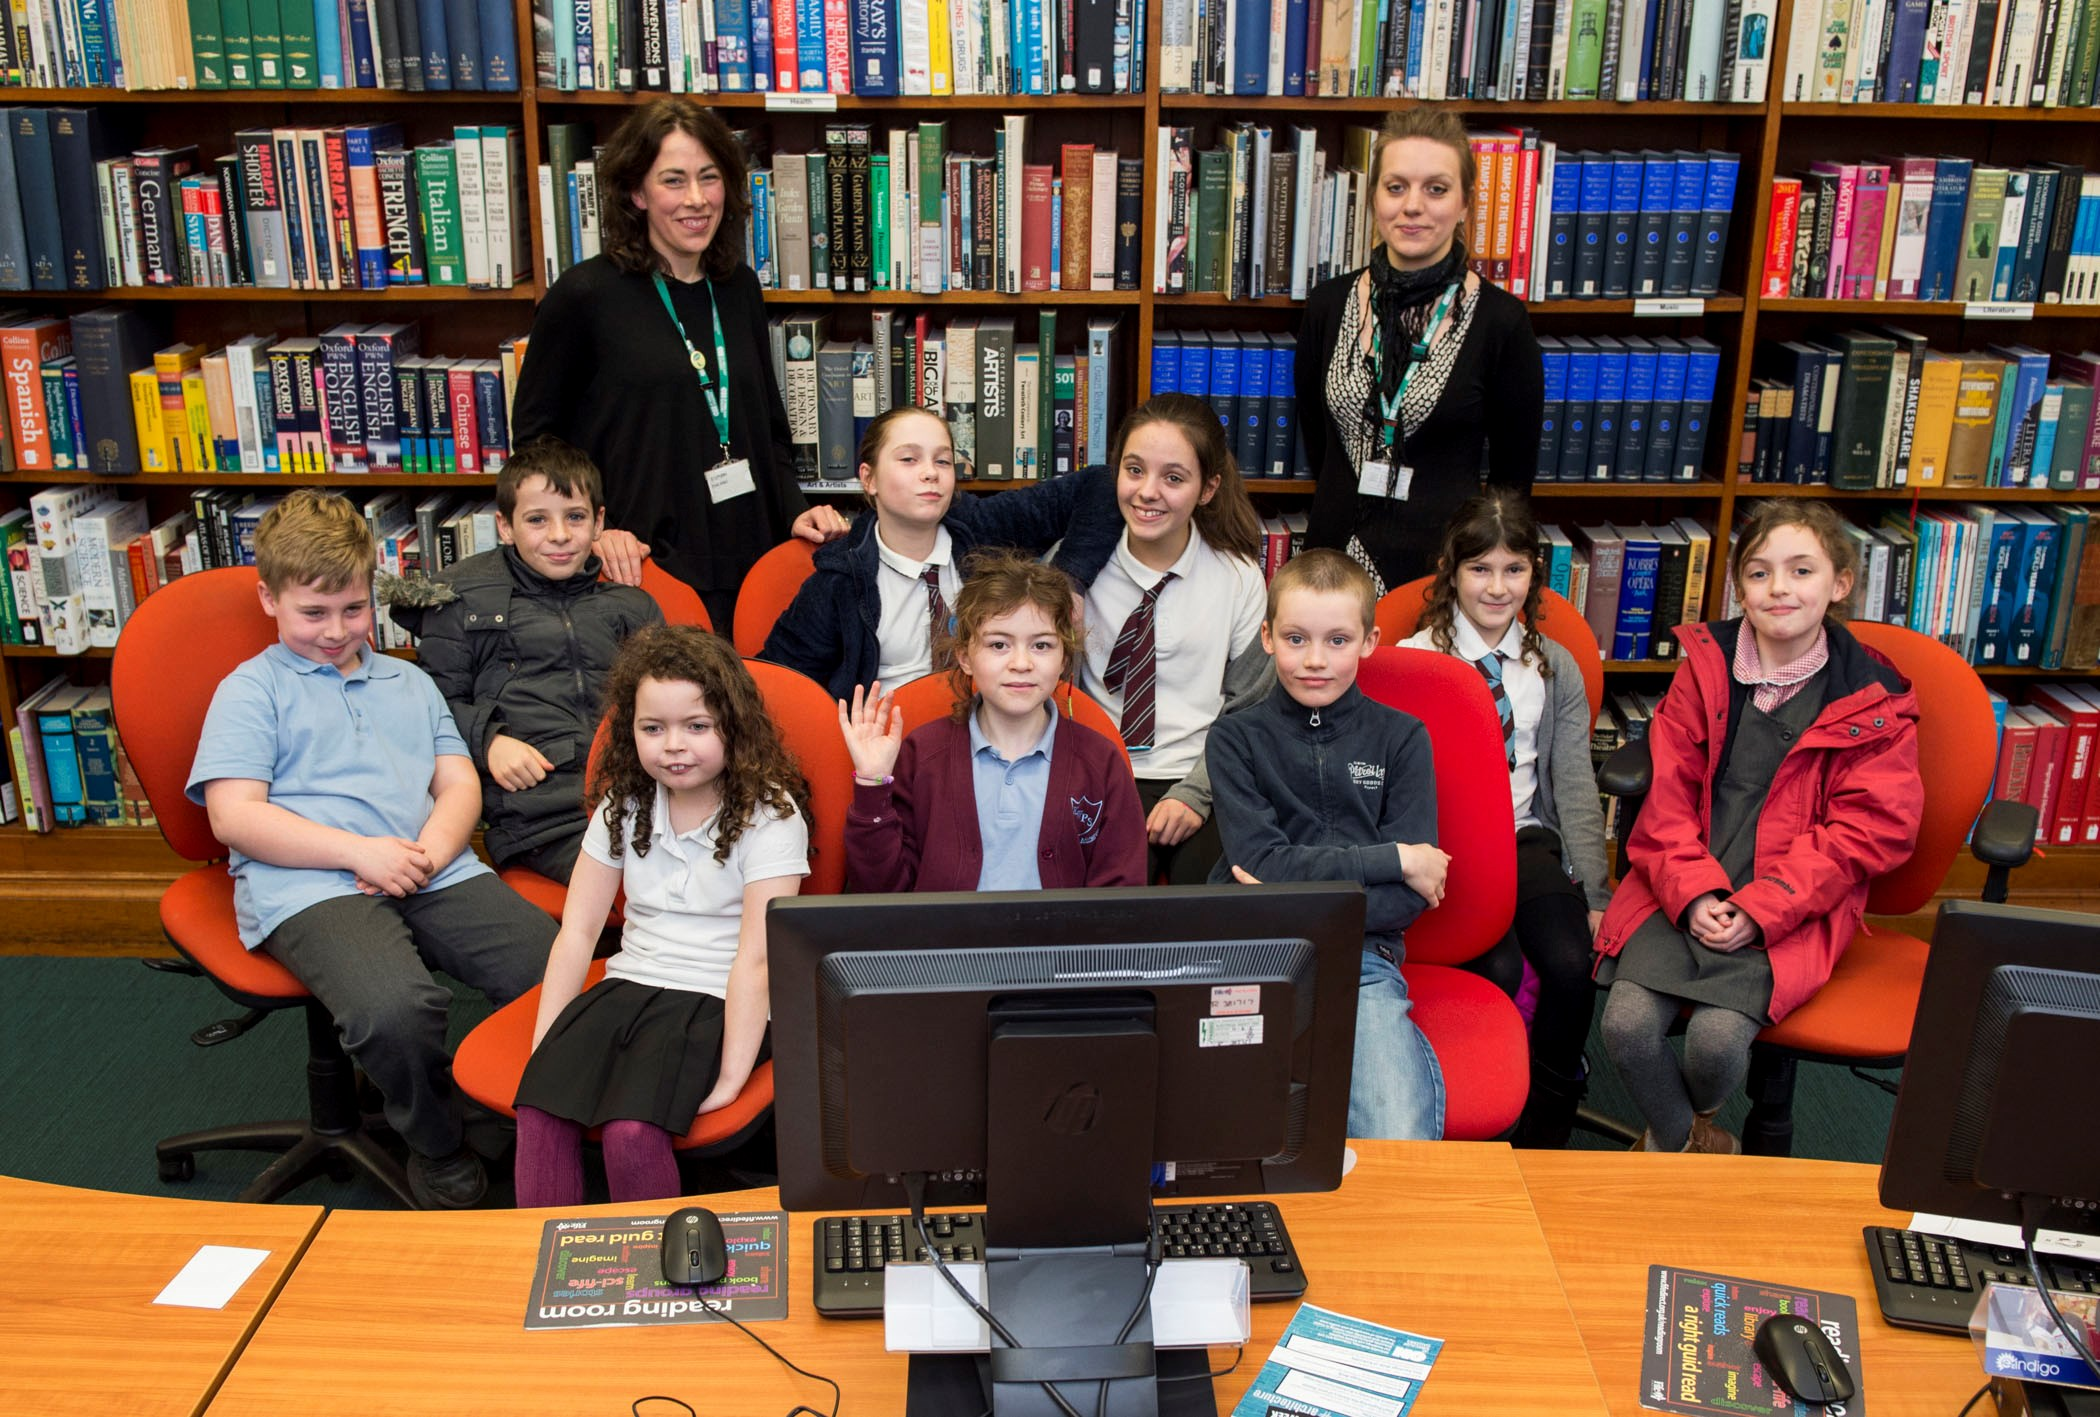 Group pic of the librarians and children from the Code Club Kircauldy Library in Fife.